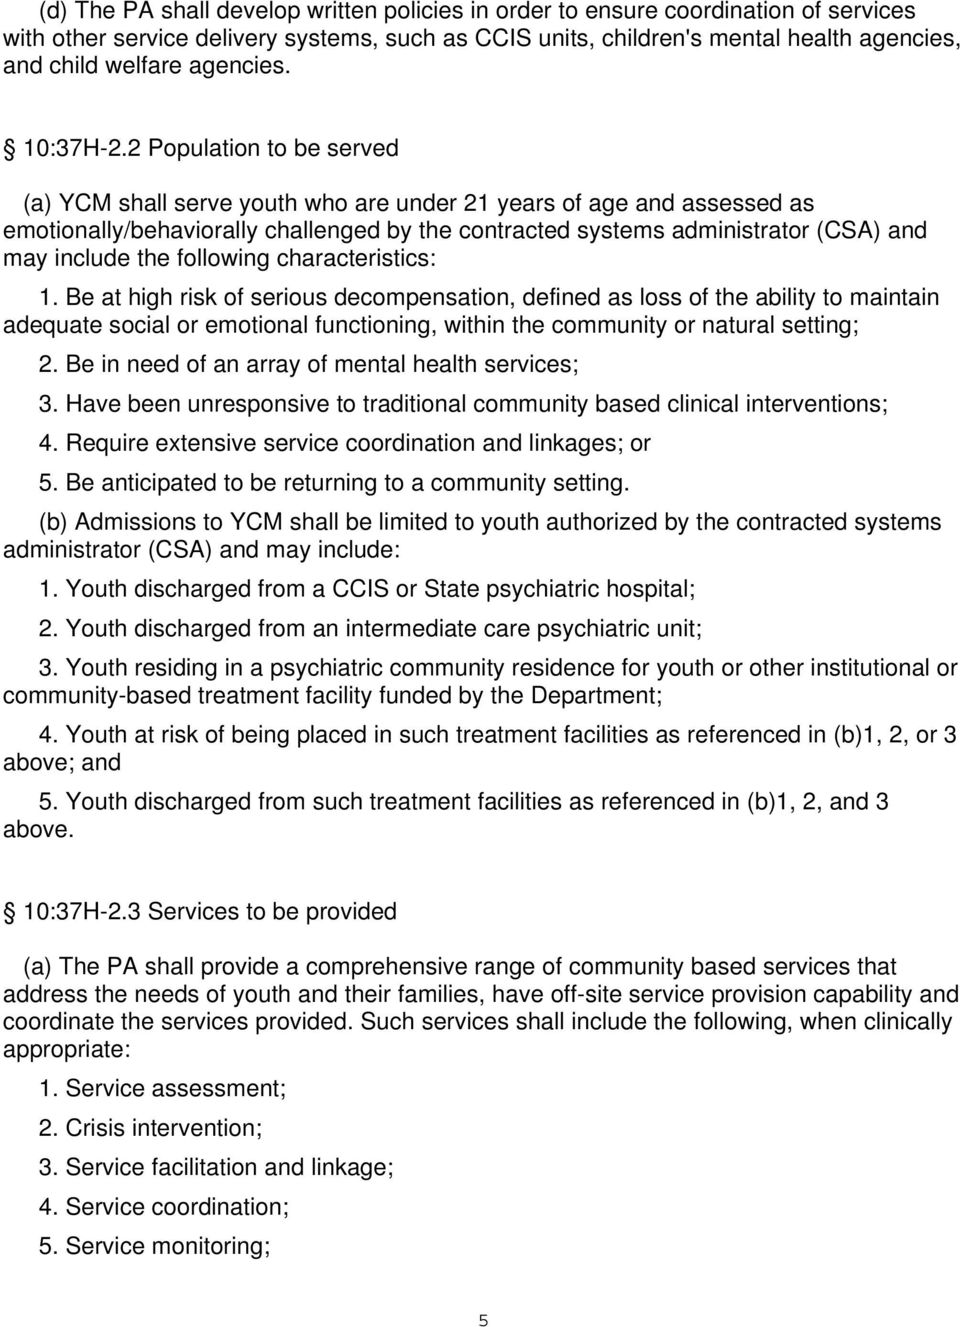 2 Population to be served (a) YCM shall serve youth who are under 21 years of age and assessed as emotionally/behaviorally challenged by the contracted systems administrator (CSA) and may include the